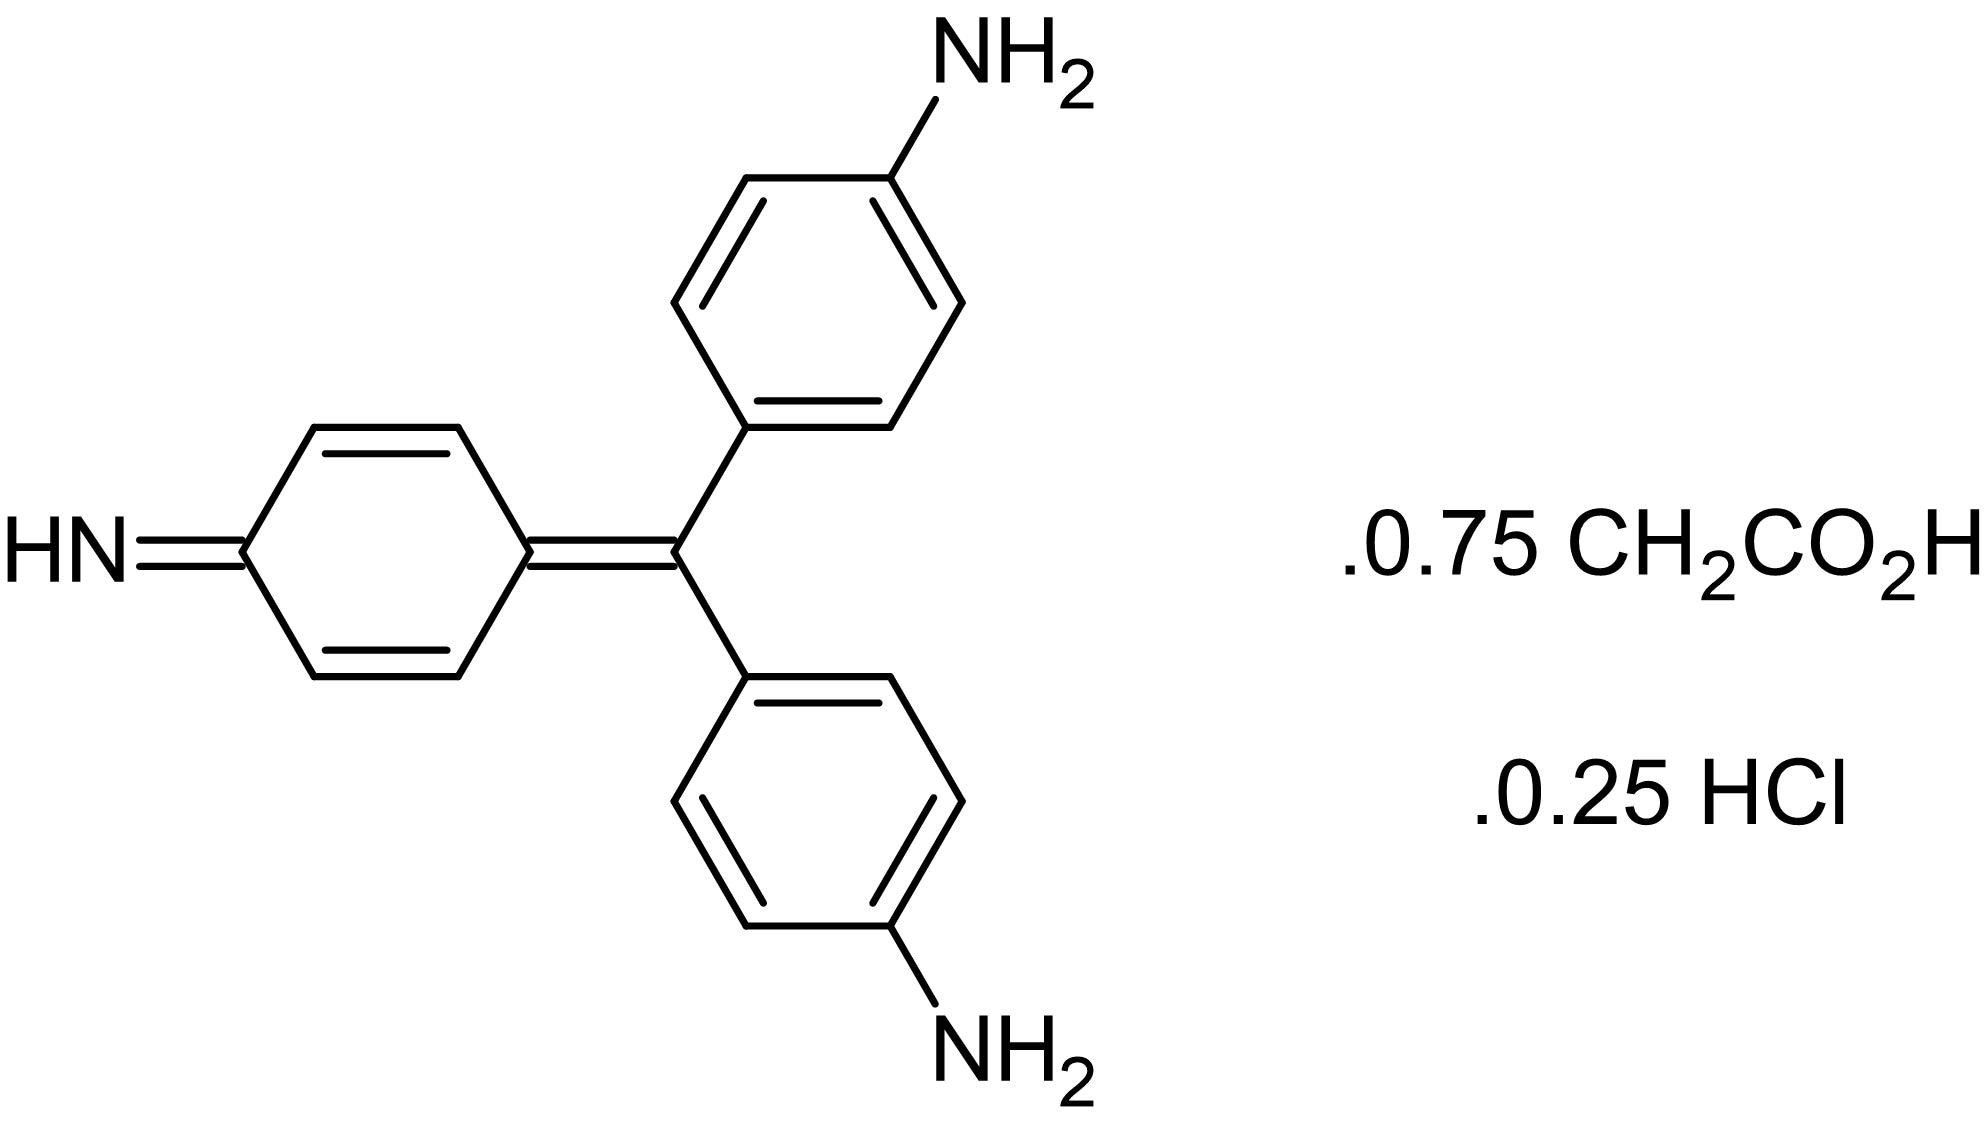 Chemical Structure - Basic fuchsin hydrochloride, Acid-fast stain (ab146335)